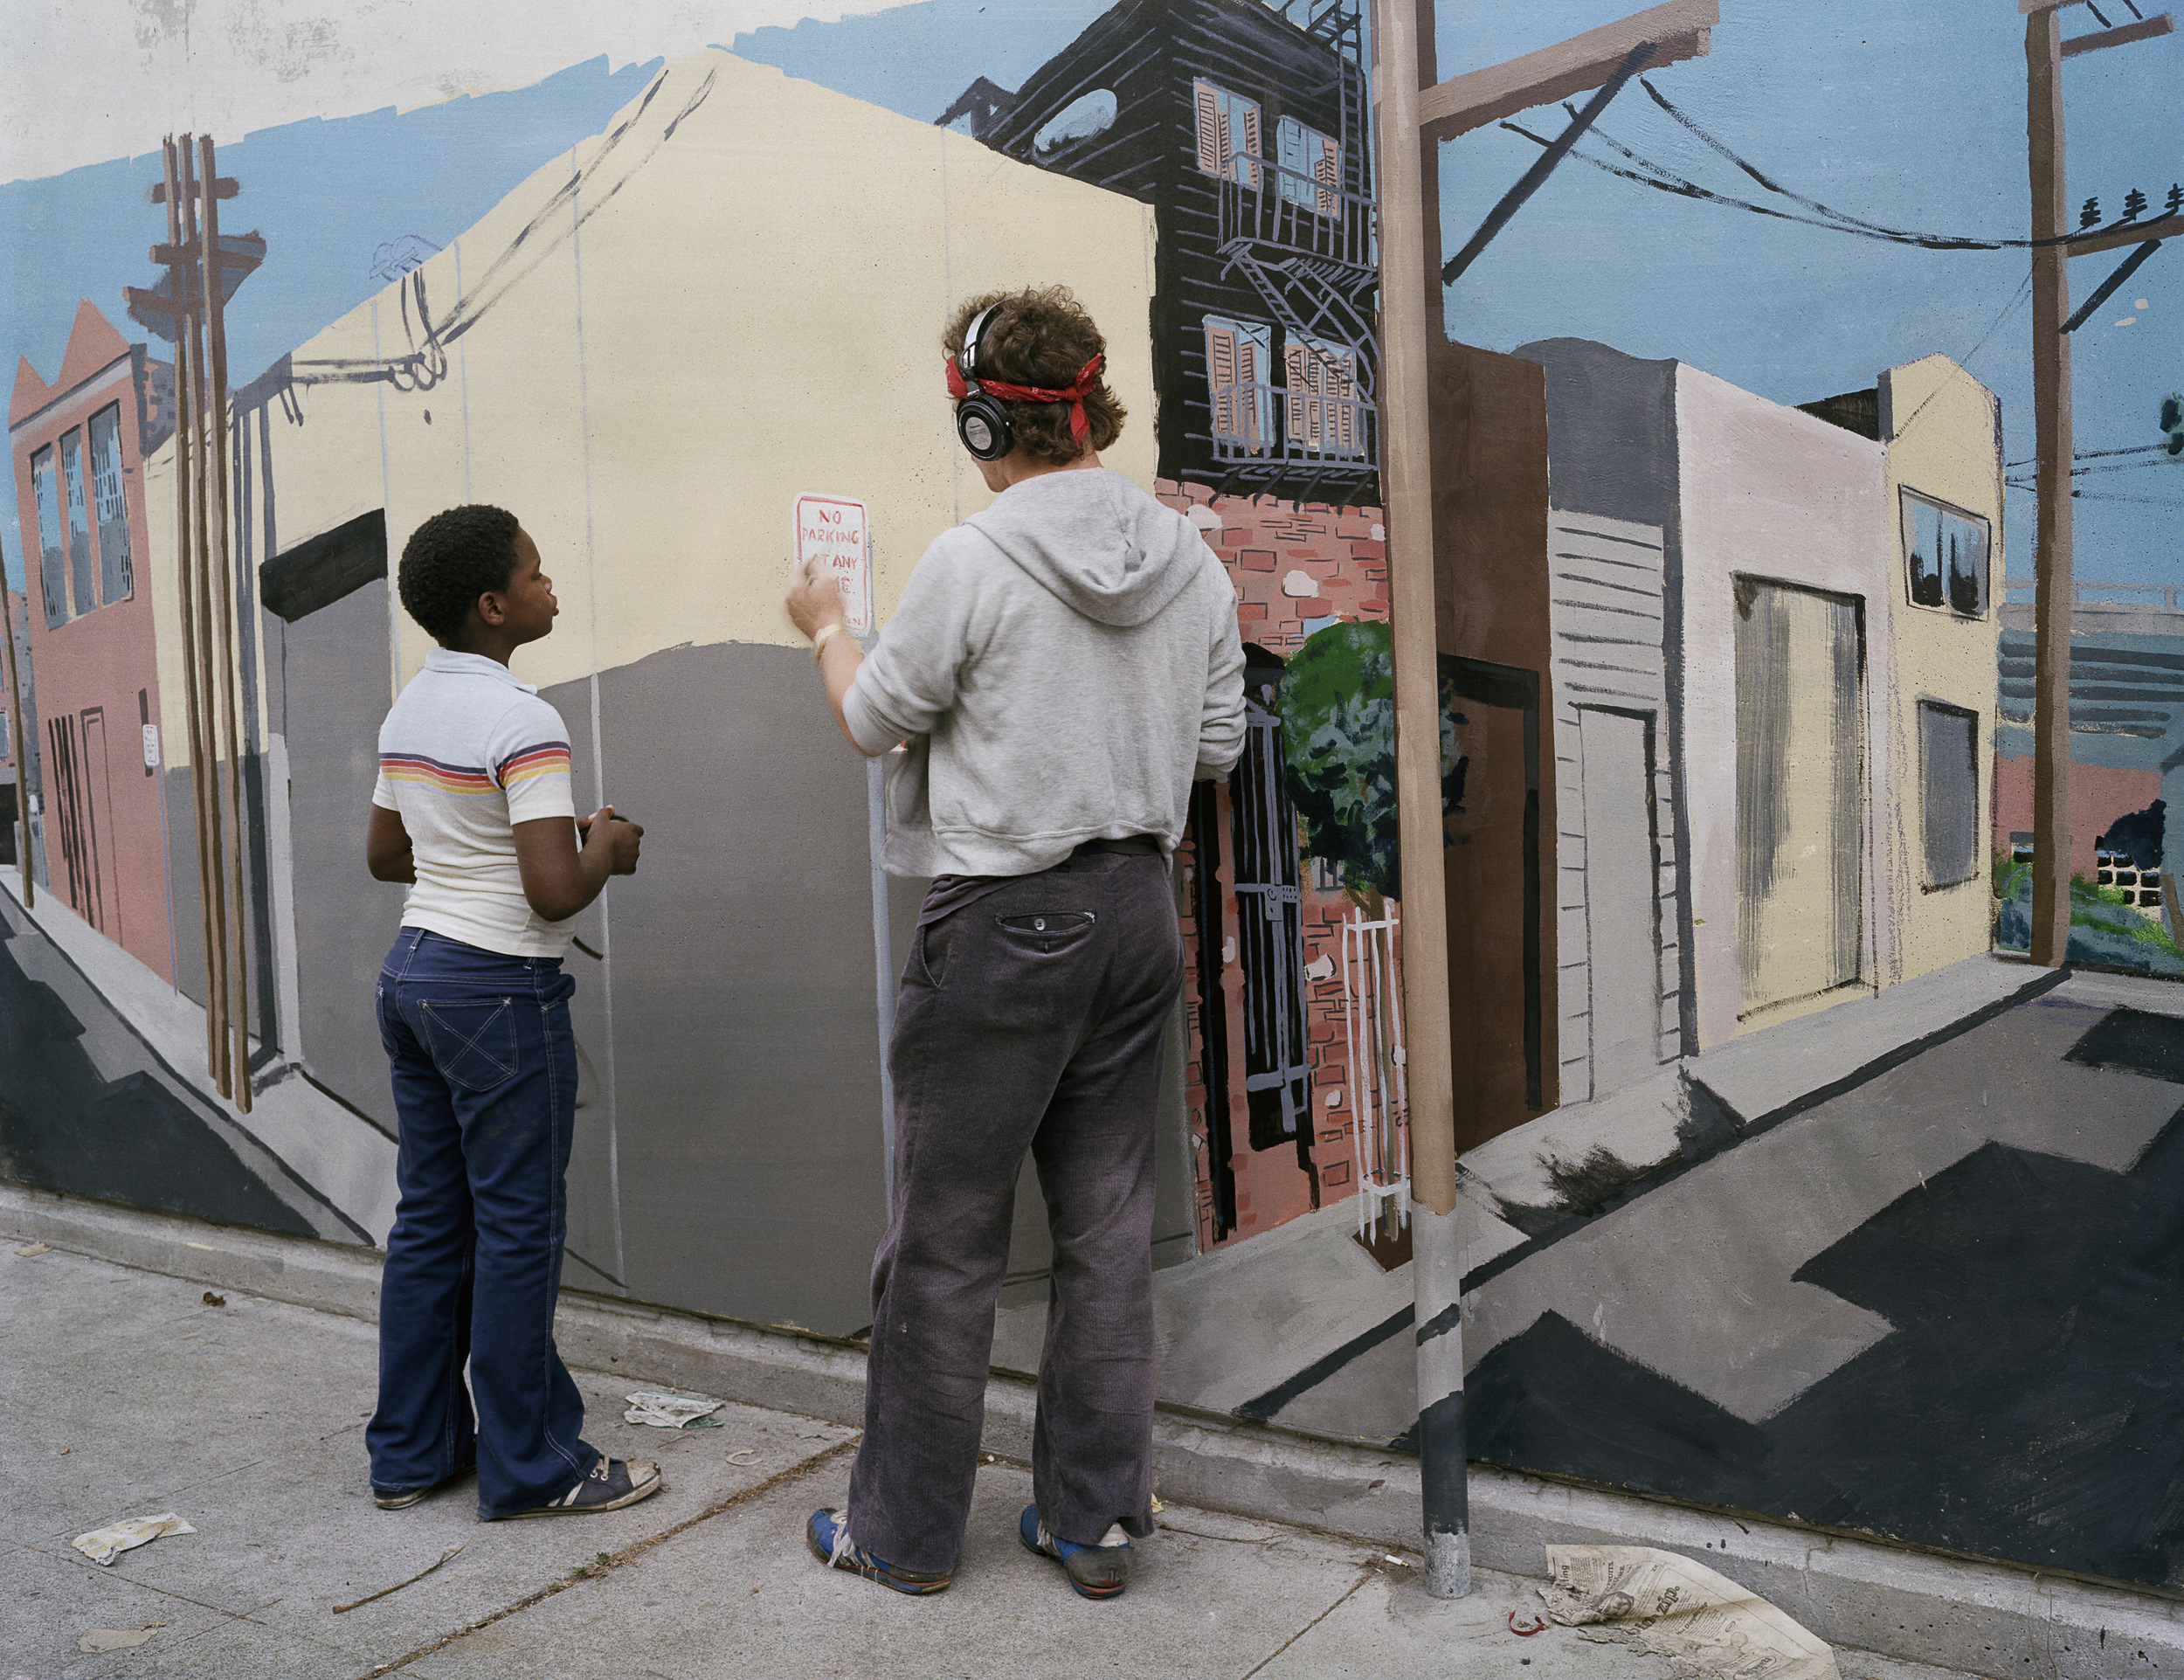 Painting Mural, Langton Street, 1980 Archival Pigment Print, 2016 16 x 20 inches, edition of 5 20 x 24 inches, edition of 2 30 x 40 inches, edition of 2